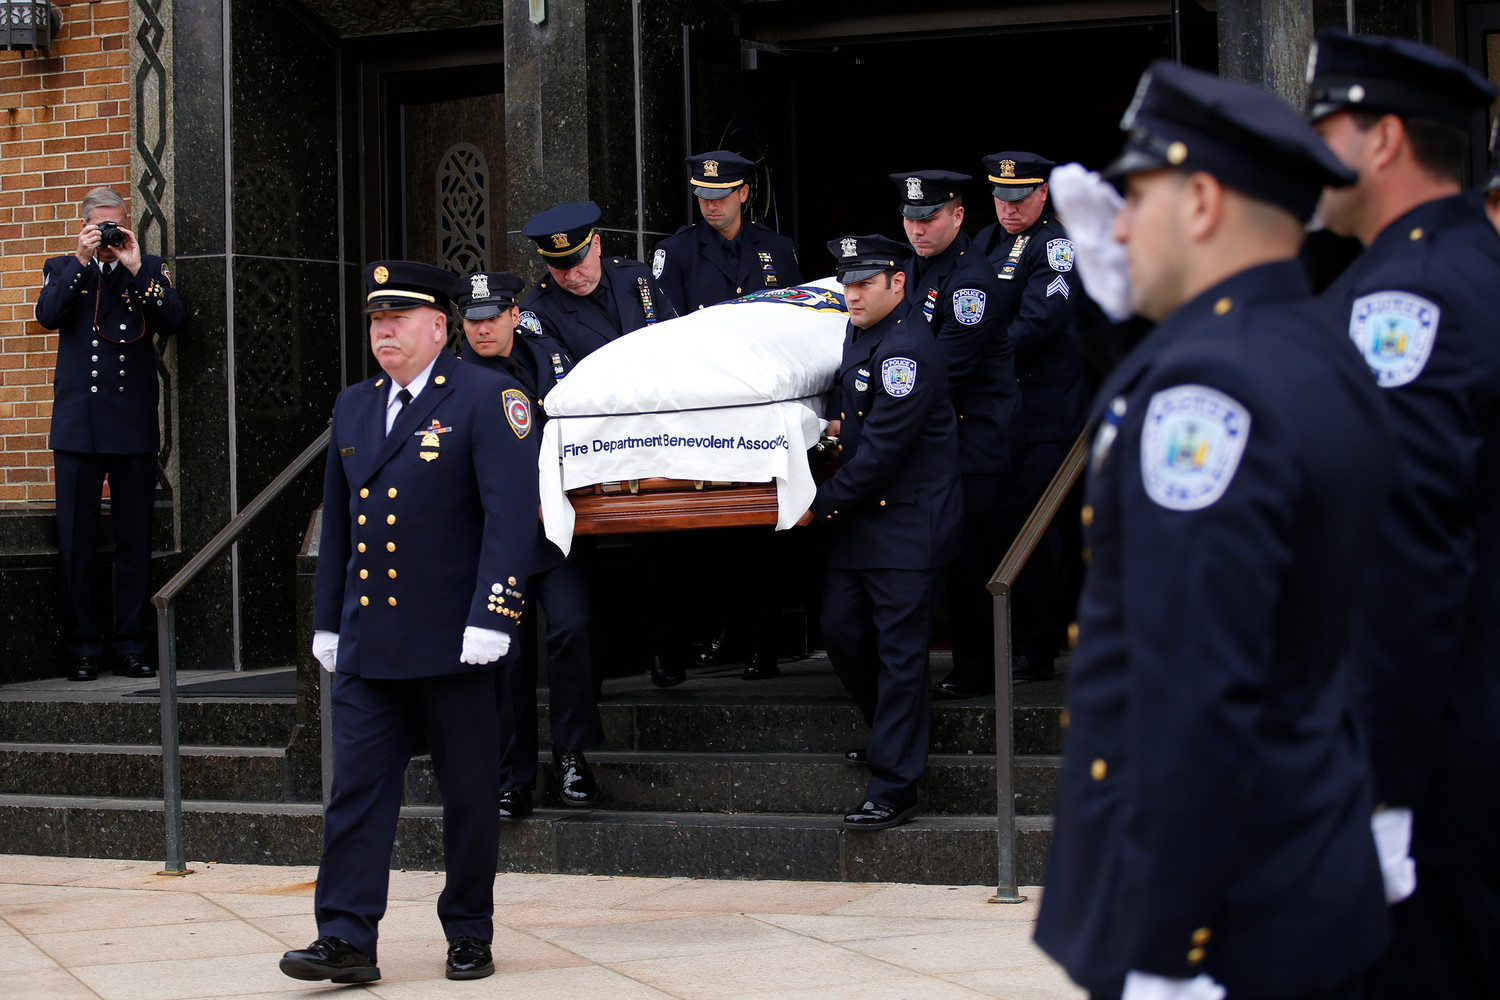 Lynbrook Fire Chief Carl Lengel led police officers as they carried Hendrick's casket out of St. Raymond's.